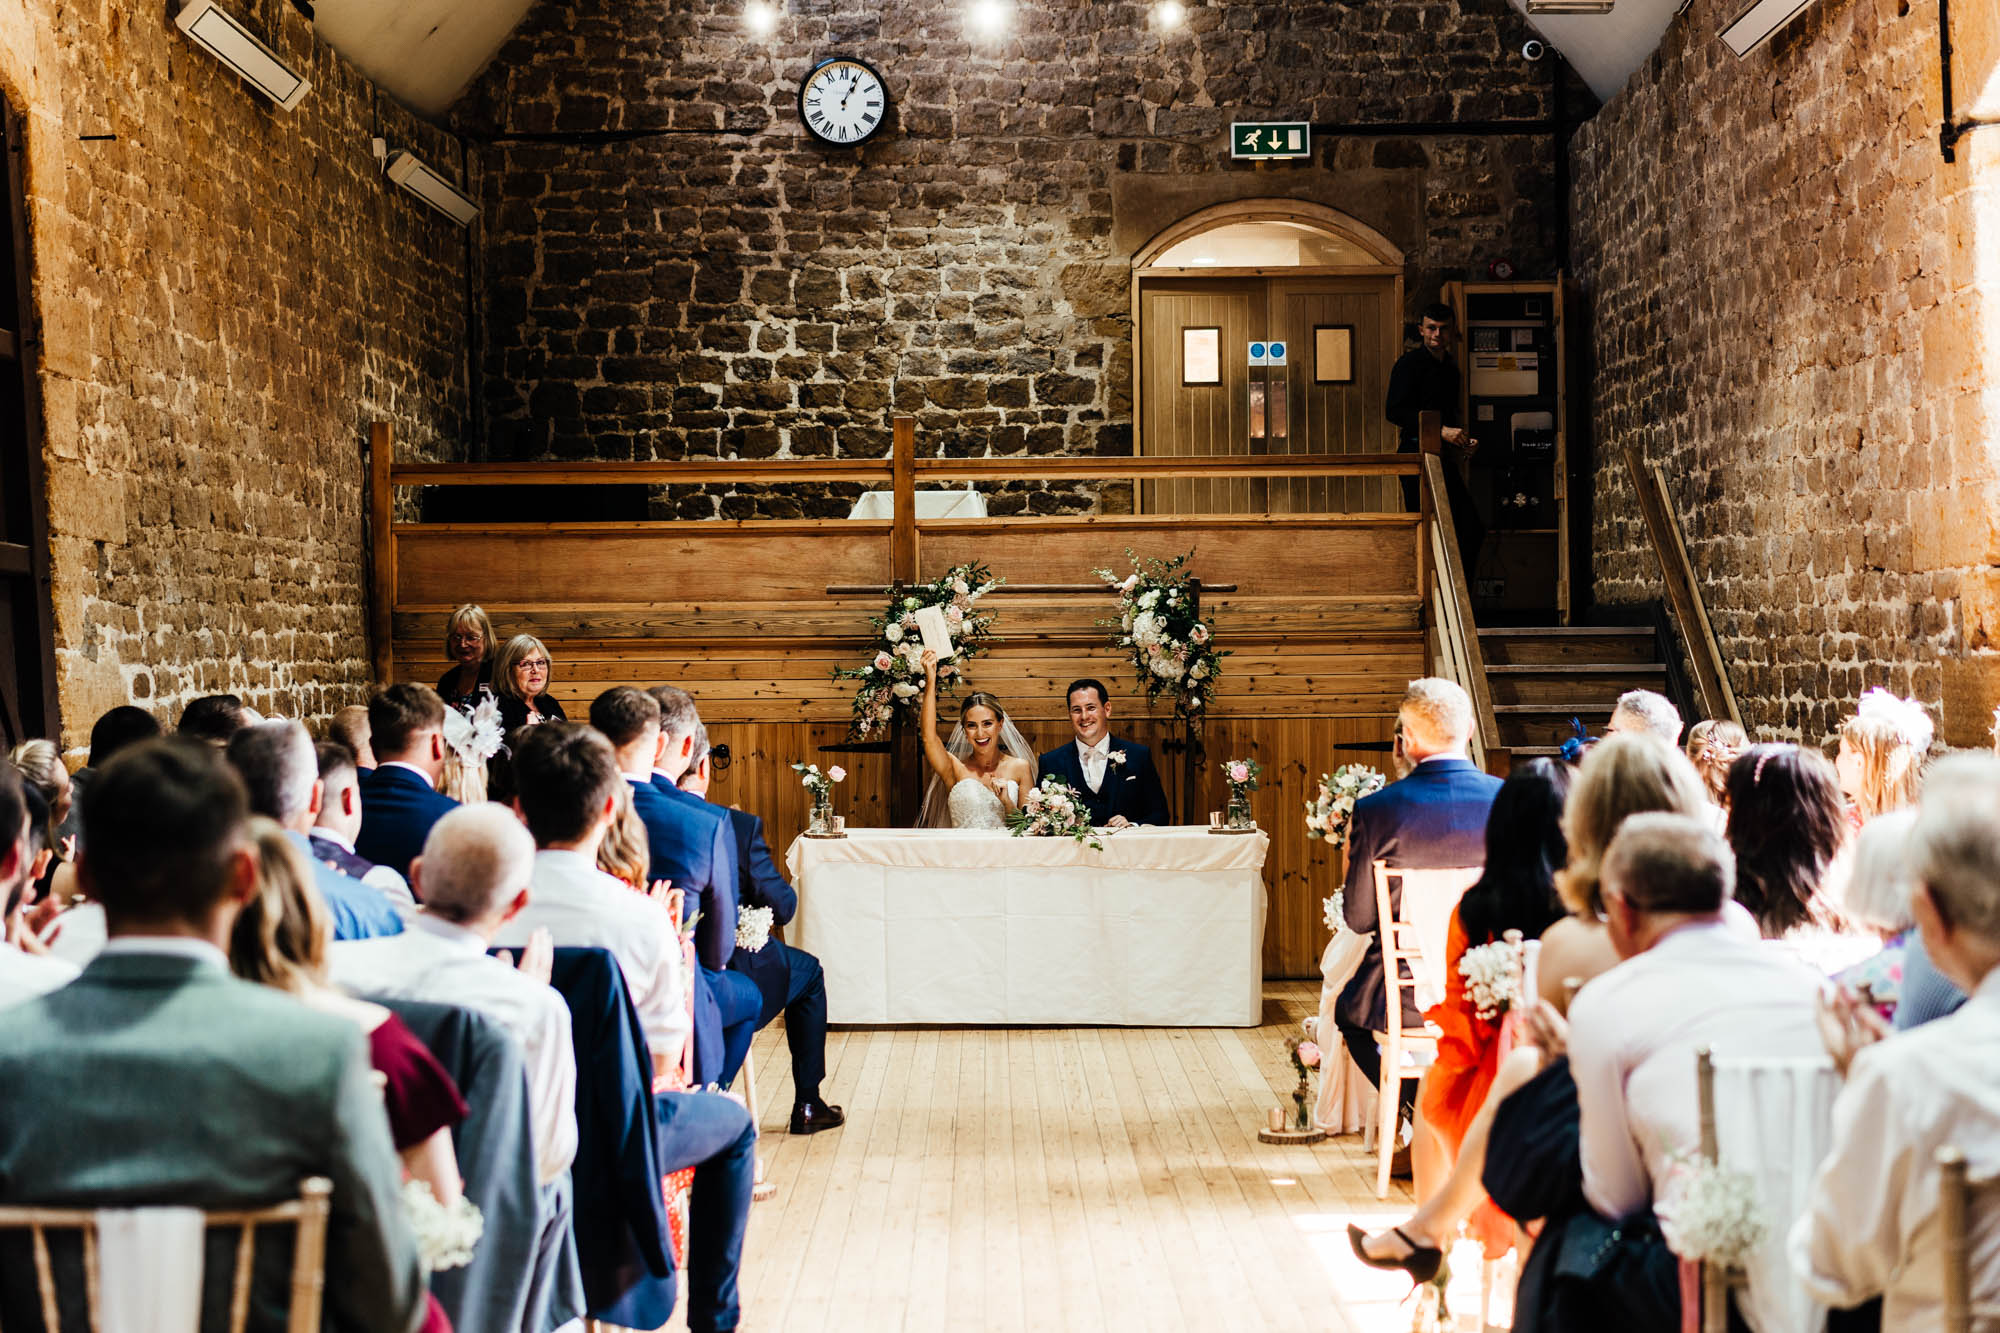 wedding-at-the-barns-at-hunsbury-hill-24